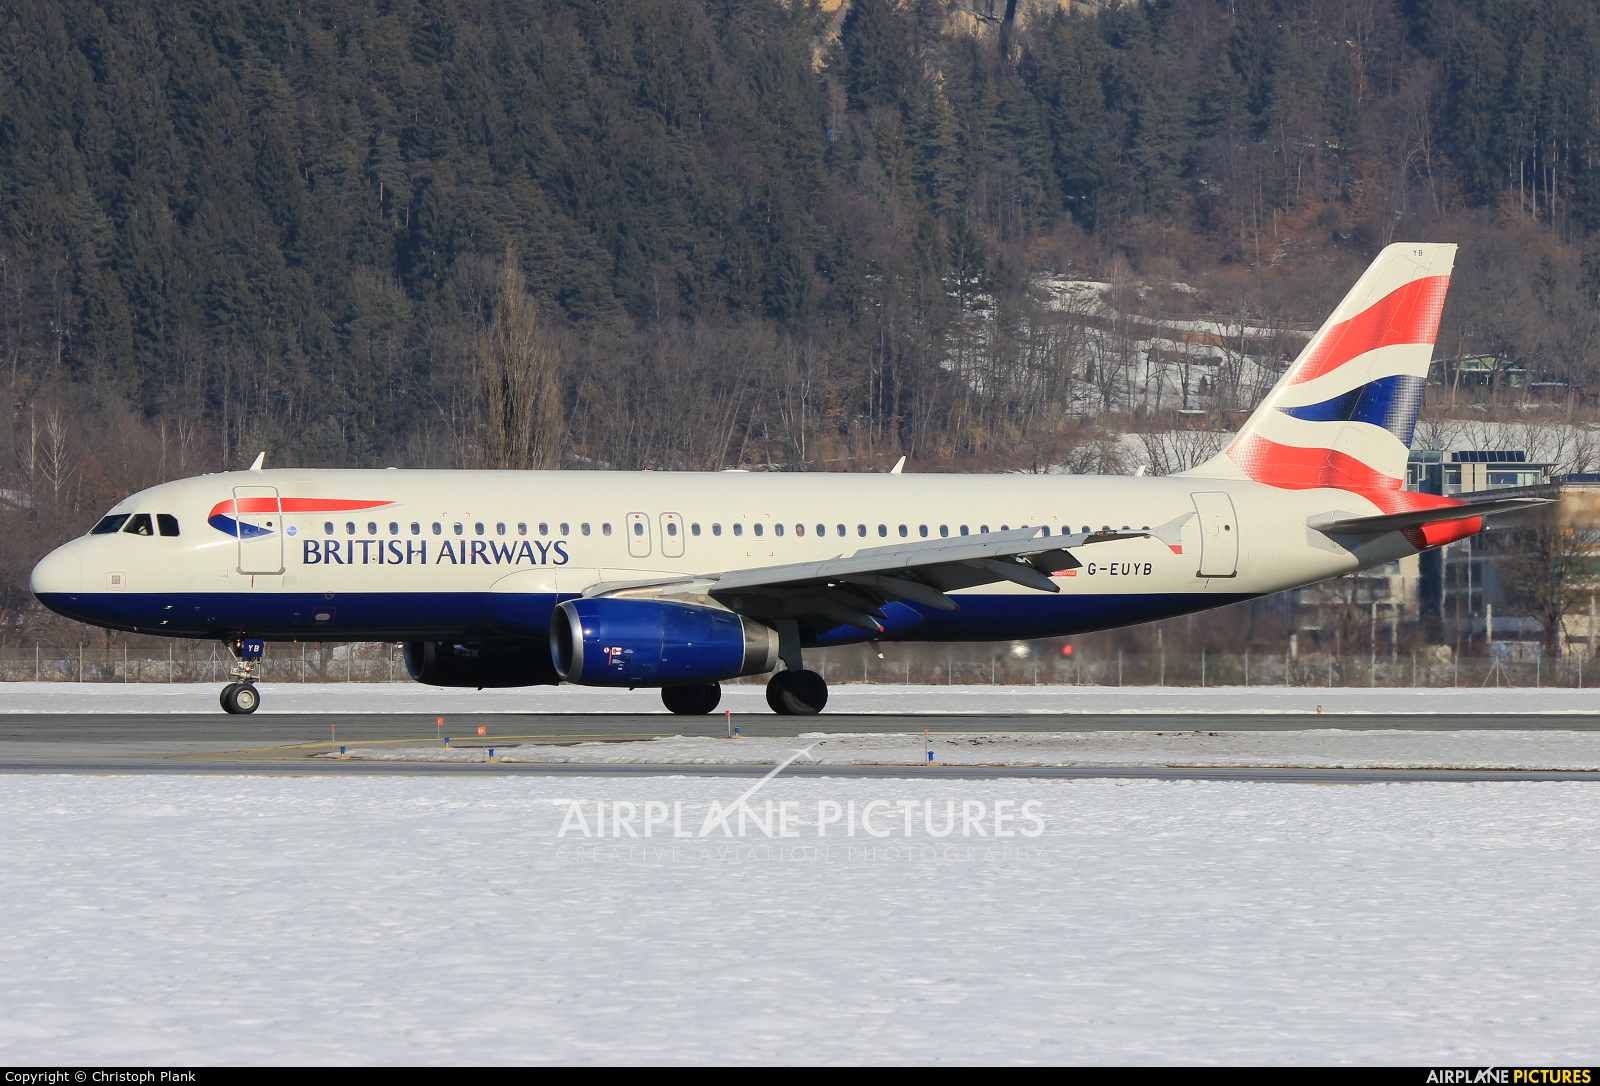 British Airways G-EUYB aircraft at Innsbruck